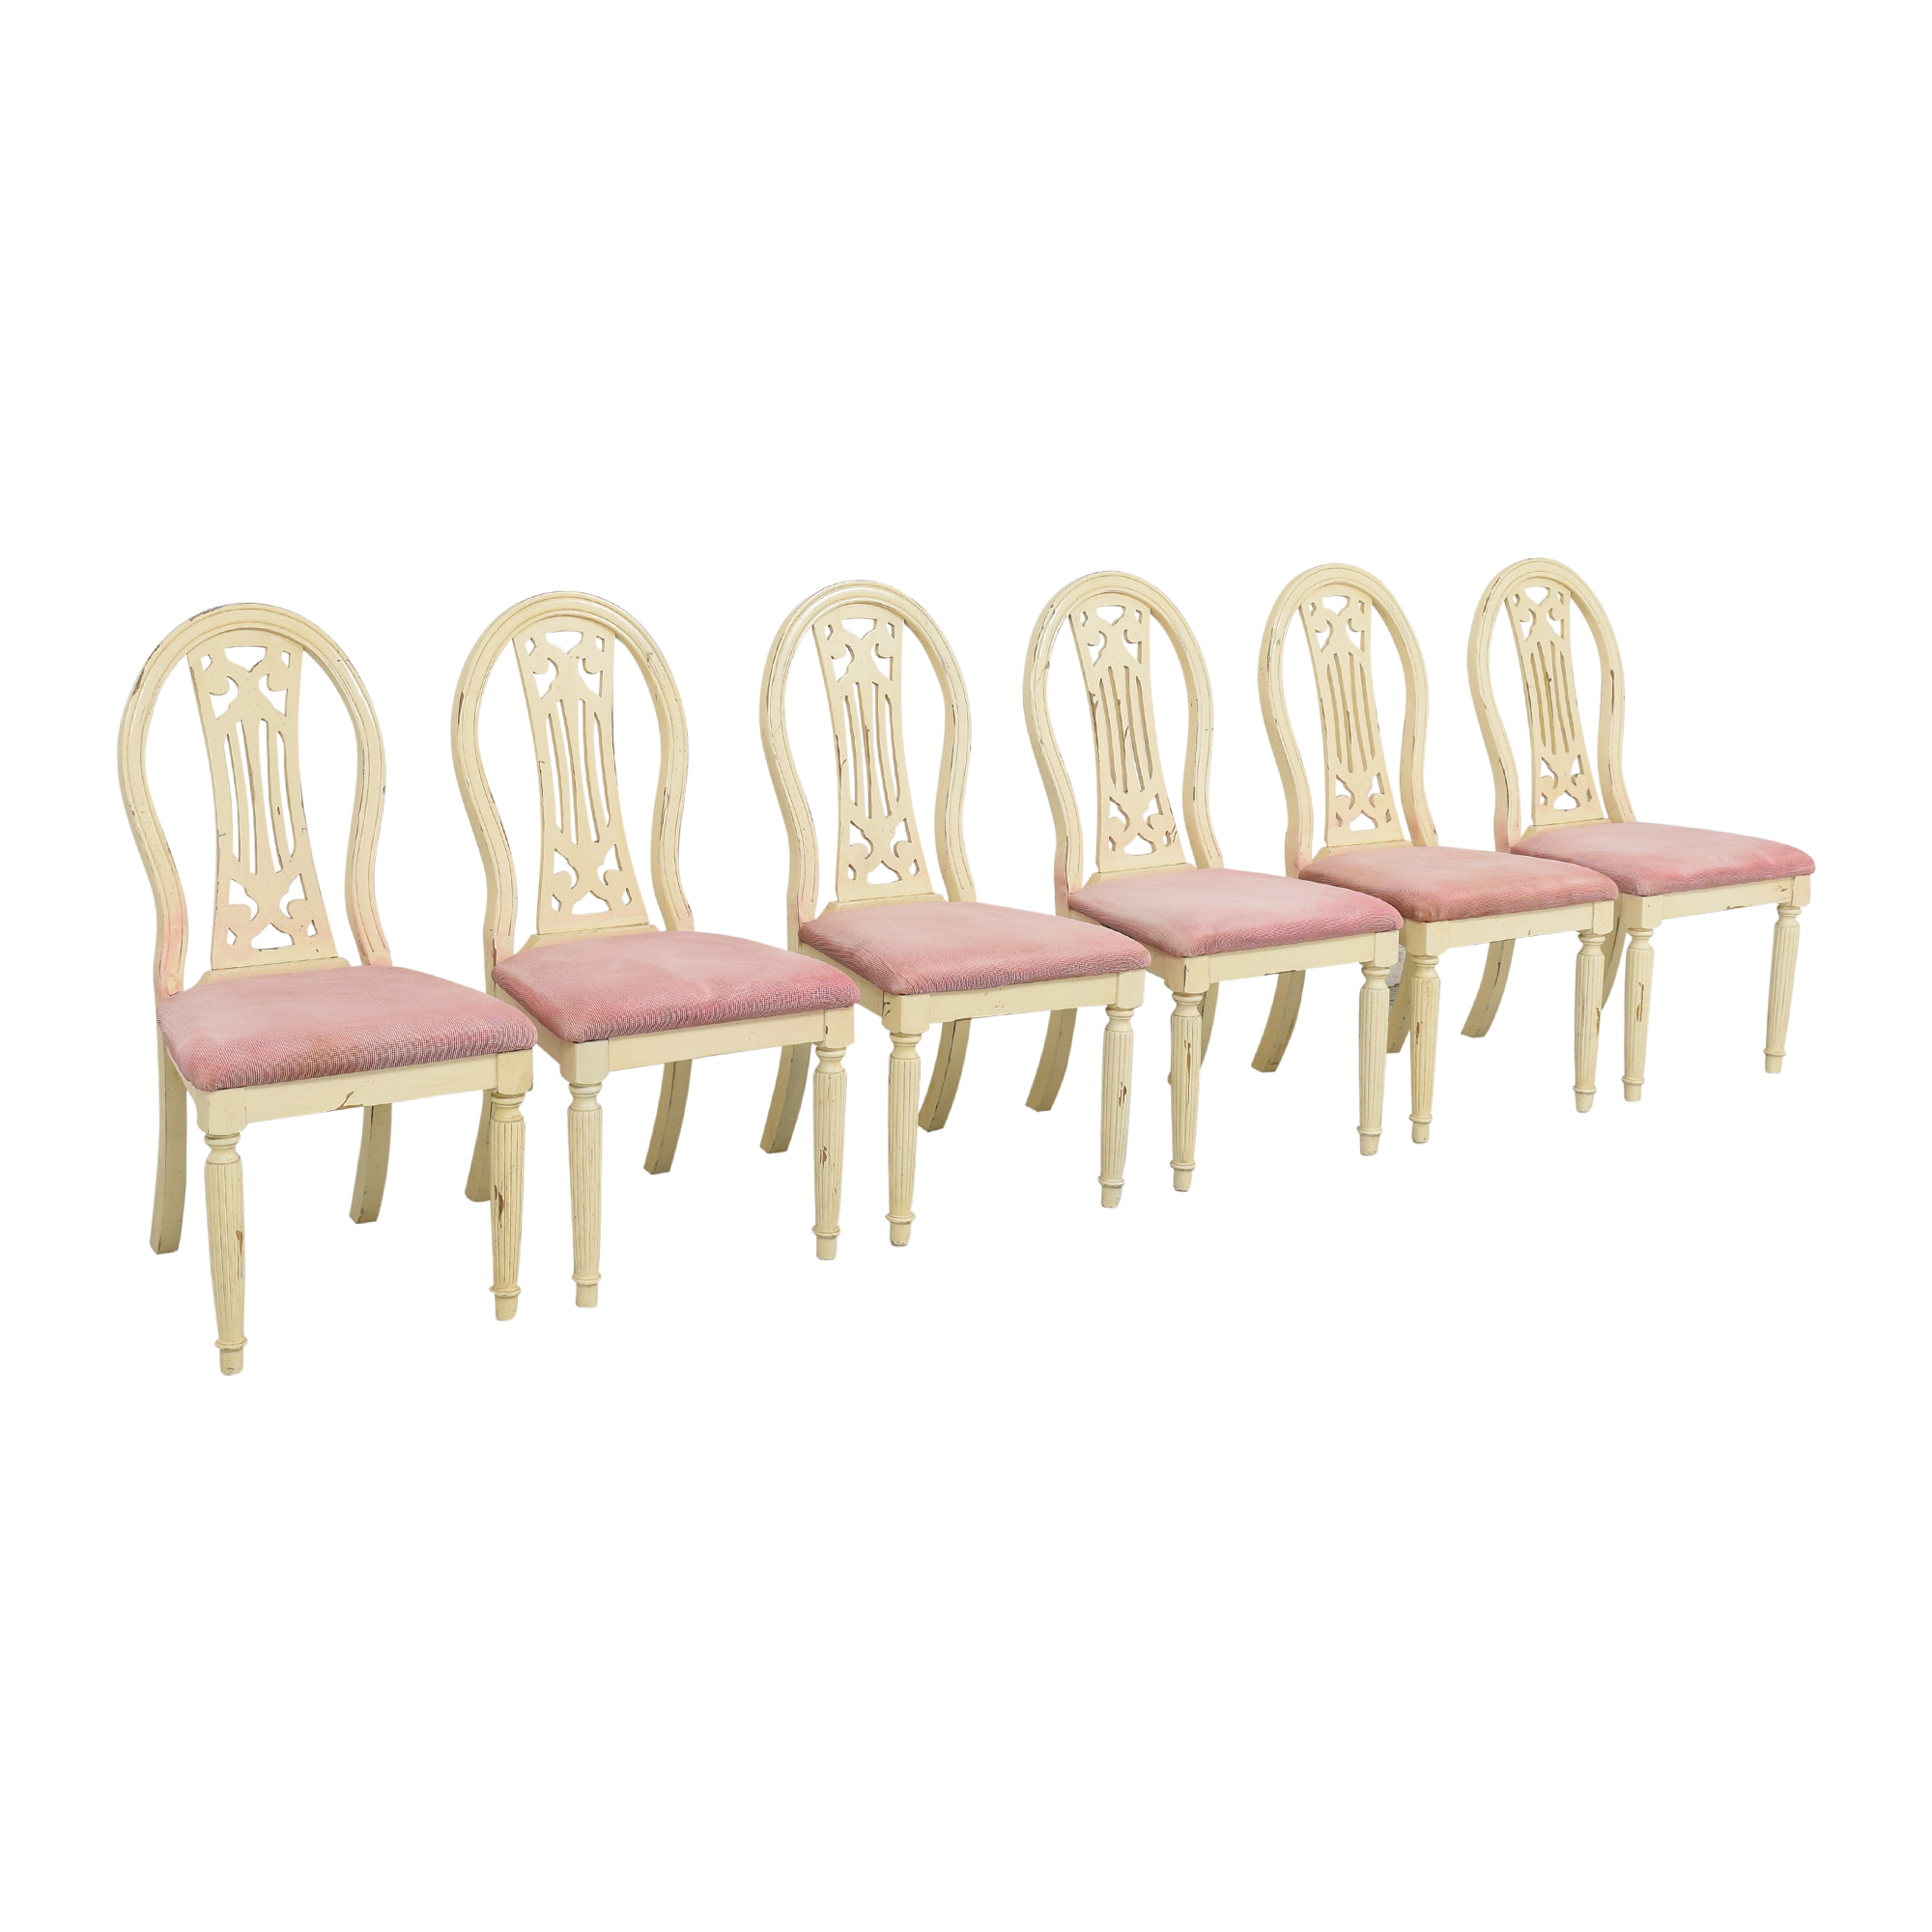 buy Rustic Upholstered Seat Dining Chairs  Chairs